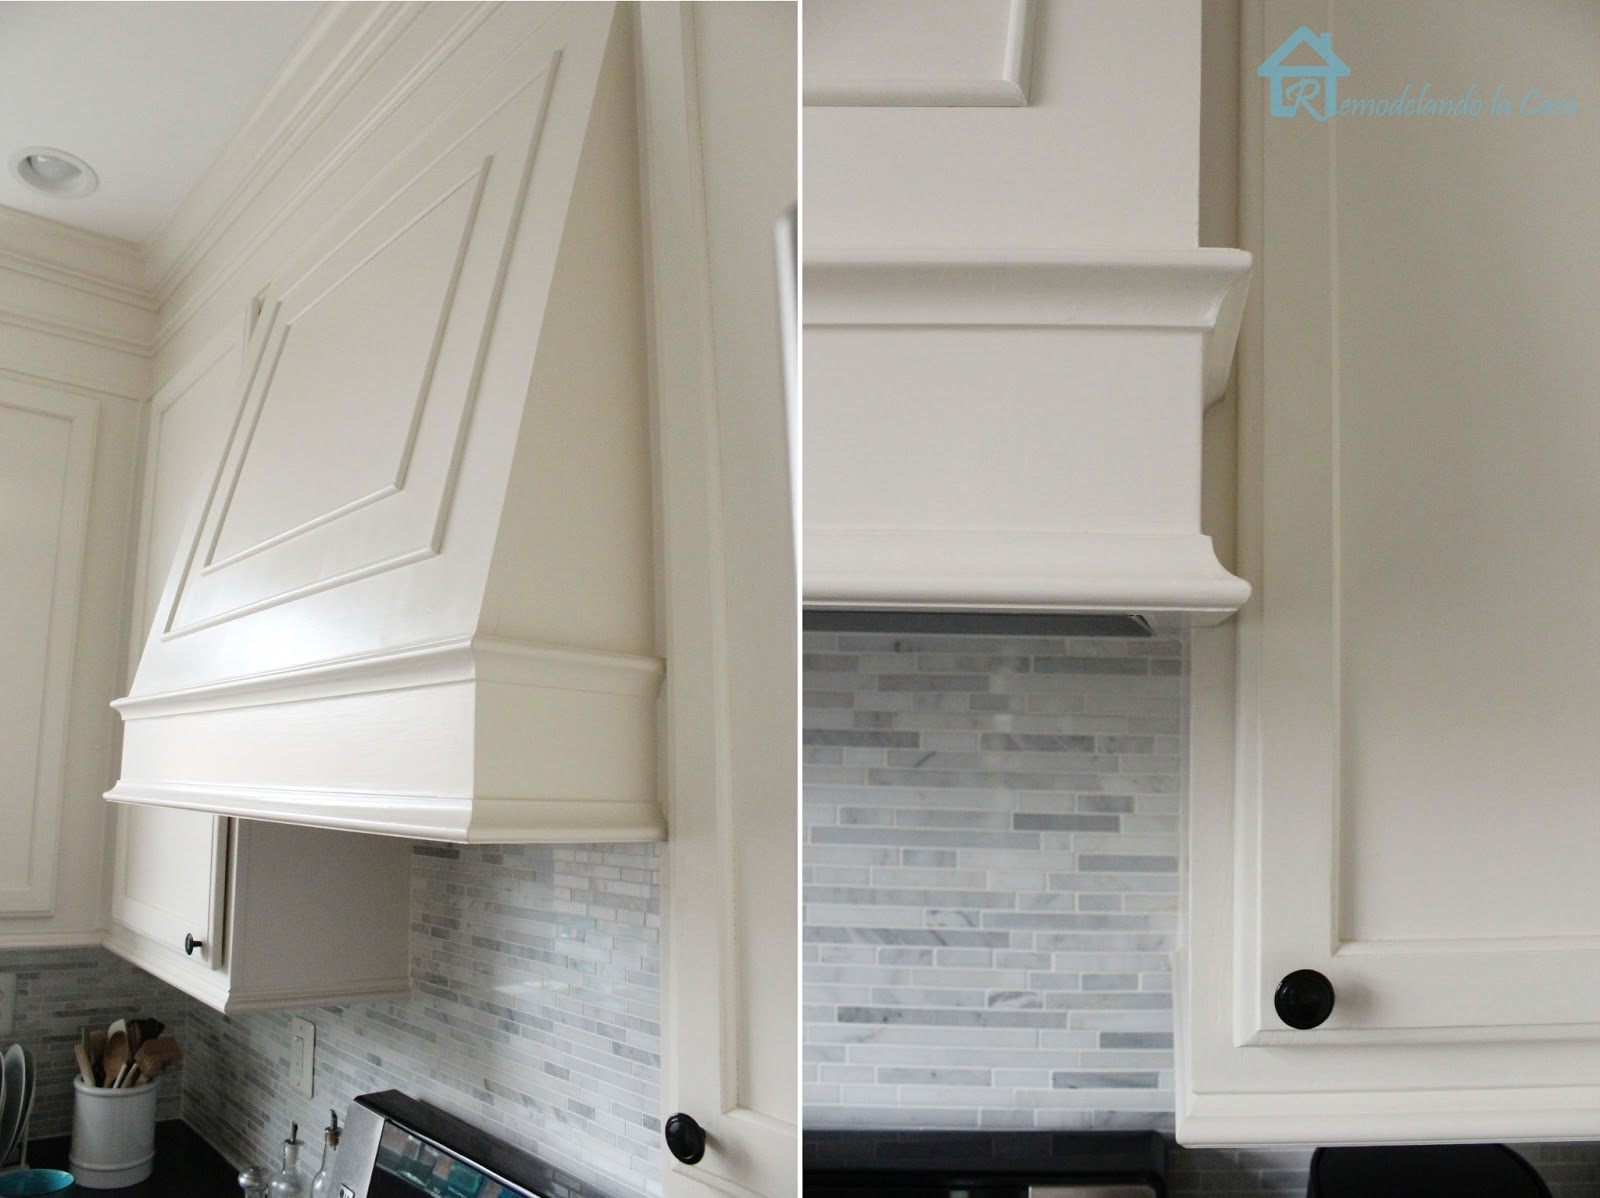 Builder's grade kitchen makeover with diy range hood